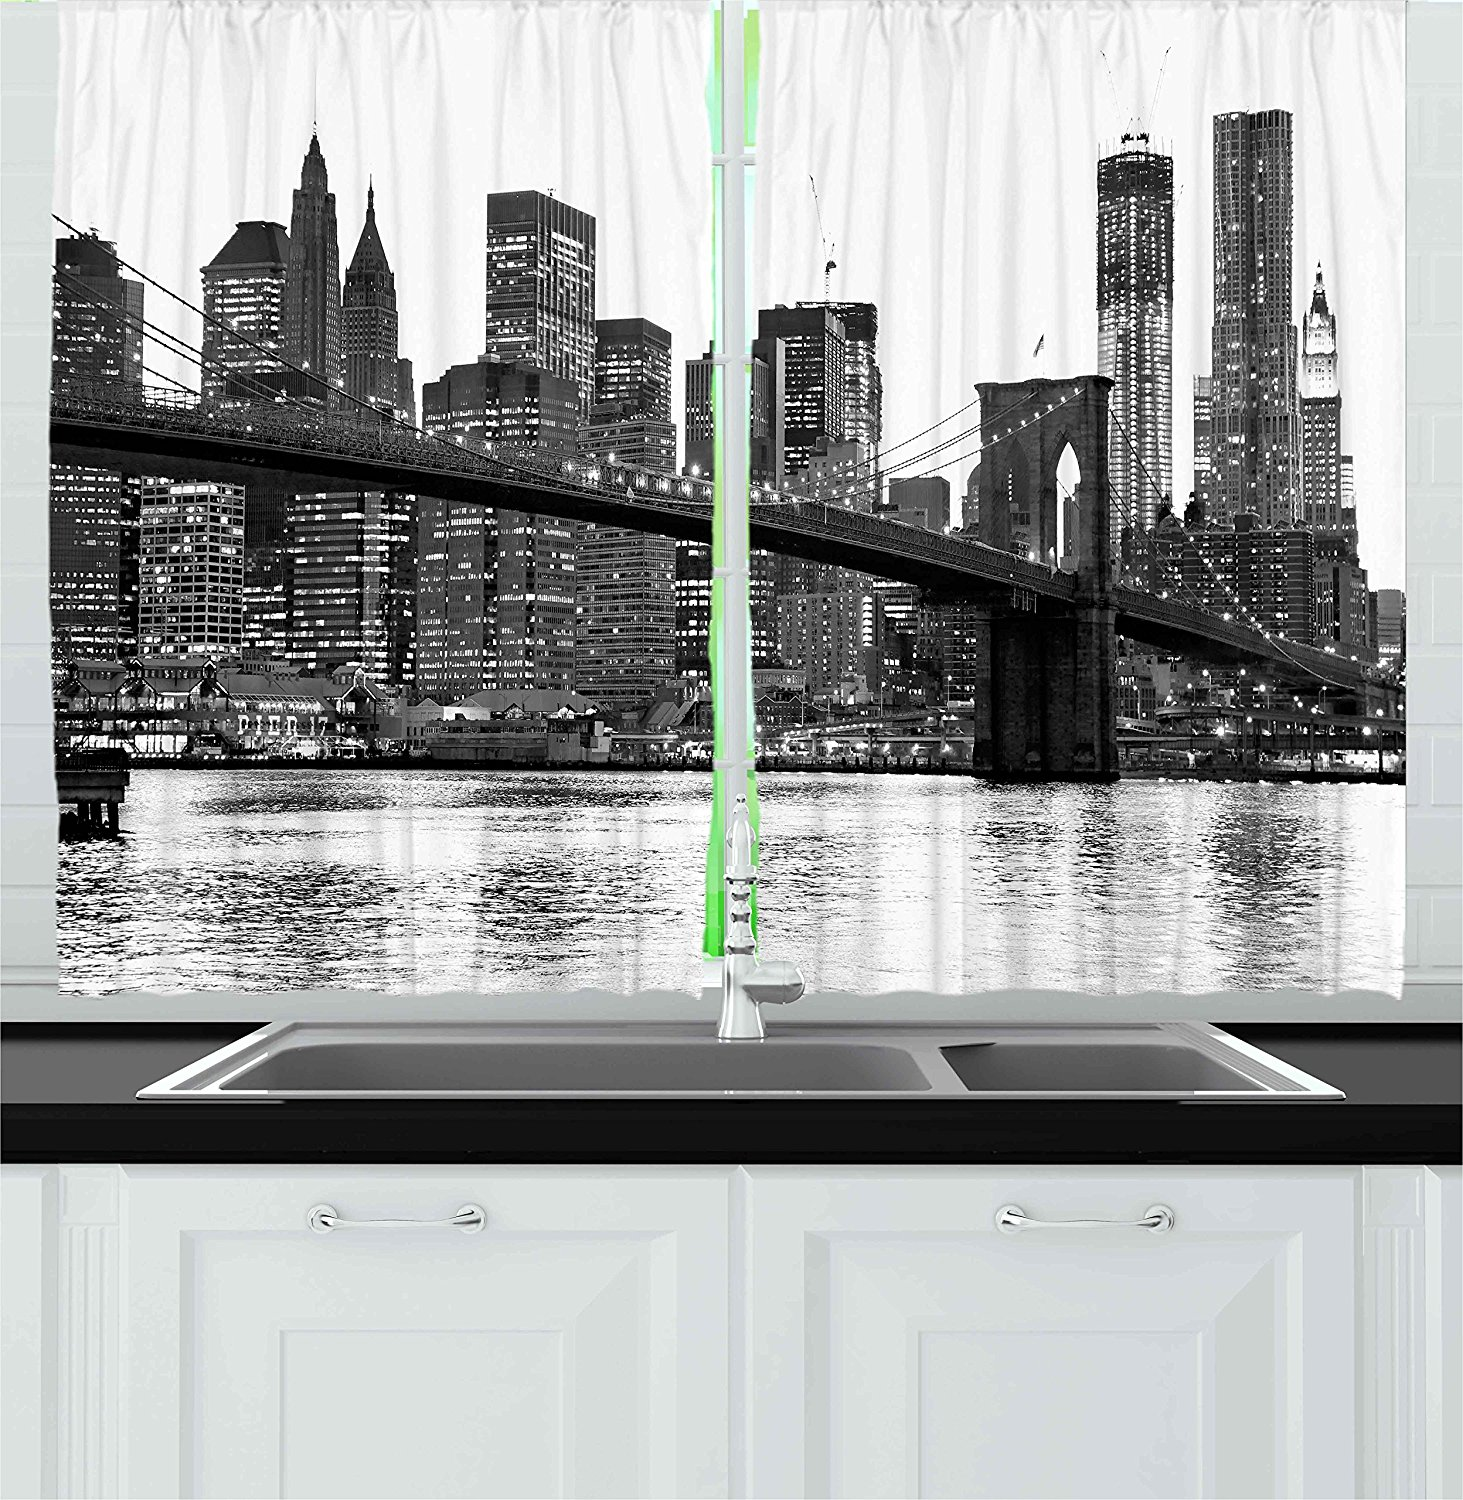 Modern Kitchen Curtains By Brooklyn Bridge Sunset With Manhattan American New York City Famous Town Image Window Drapes 2 Panels Set For Kitchen Cafe 55 W X By Ambesonne Walmart Com Walmart Com